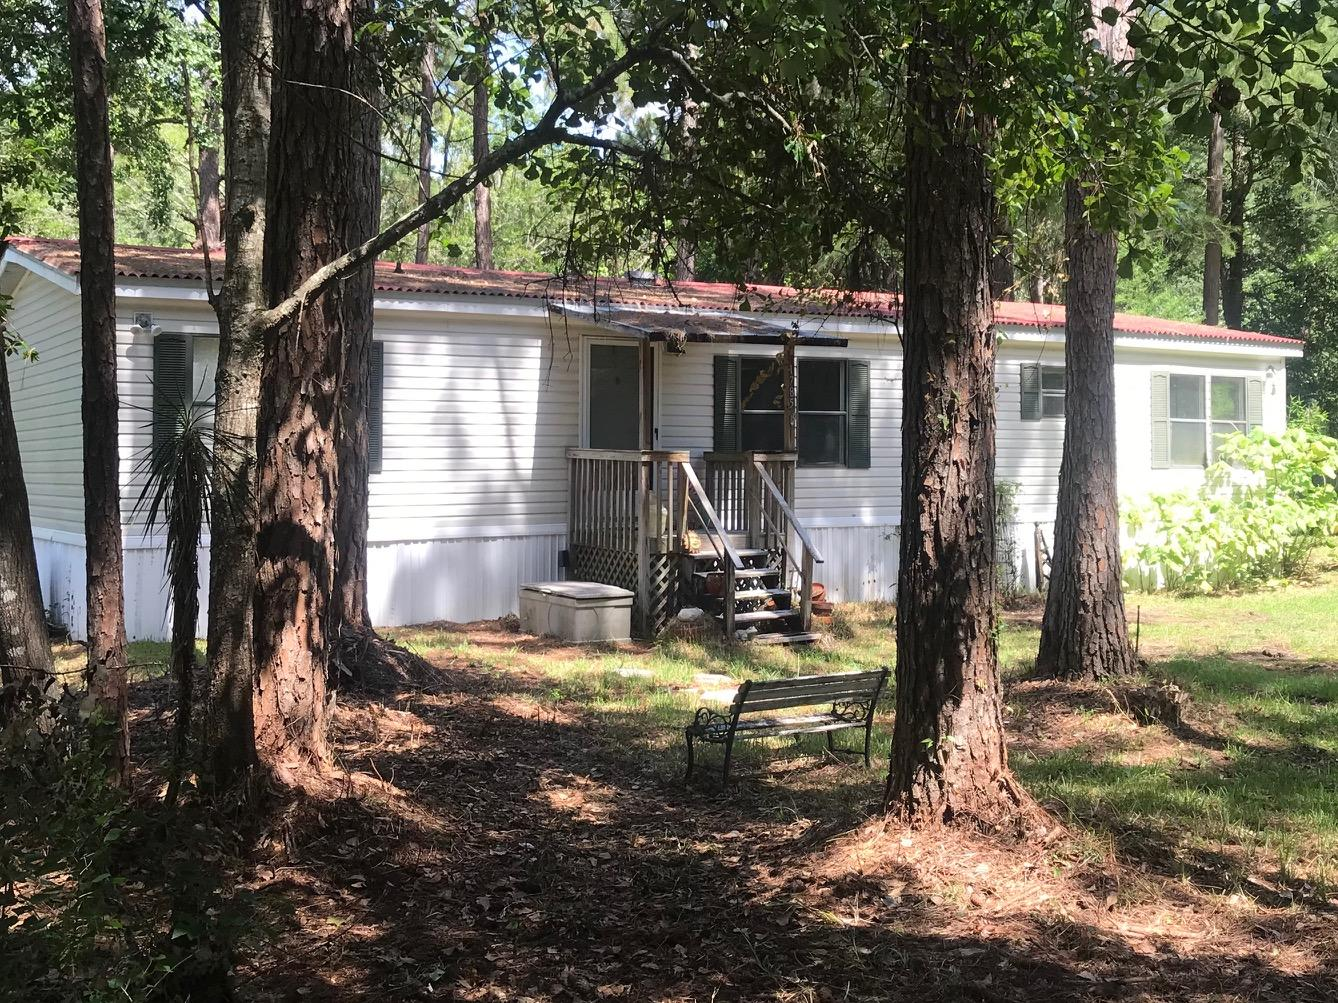 Looking for a Mobile Home with a great location with Public Access to Choctawhattchee Bay and plenty of room to expand? This home is close to HWY 331 Bridge that will take you North to the Interstate and to the Beaches of South Walton. The home faces a private road and has plenty of shade.   Easy Show so schedule your showing today.